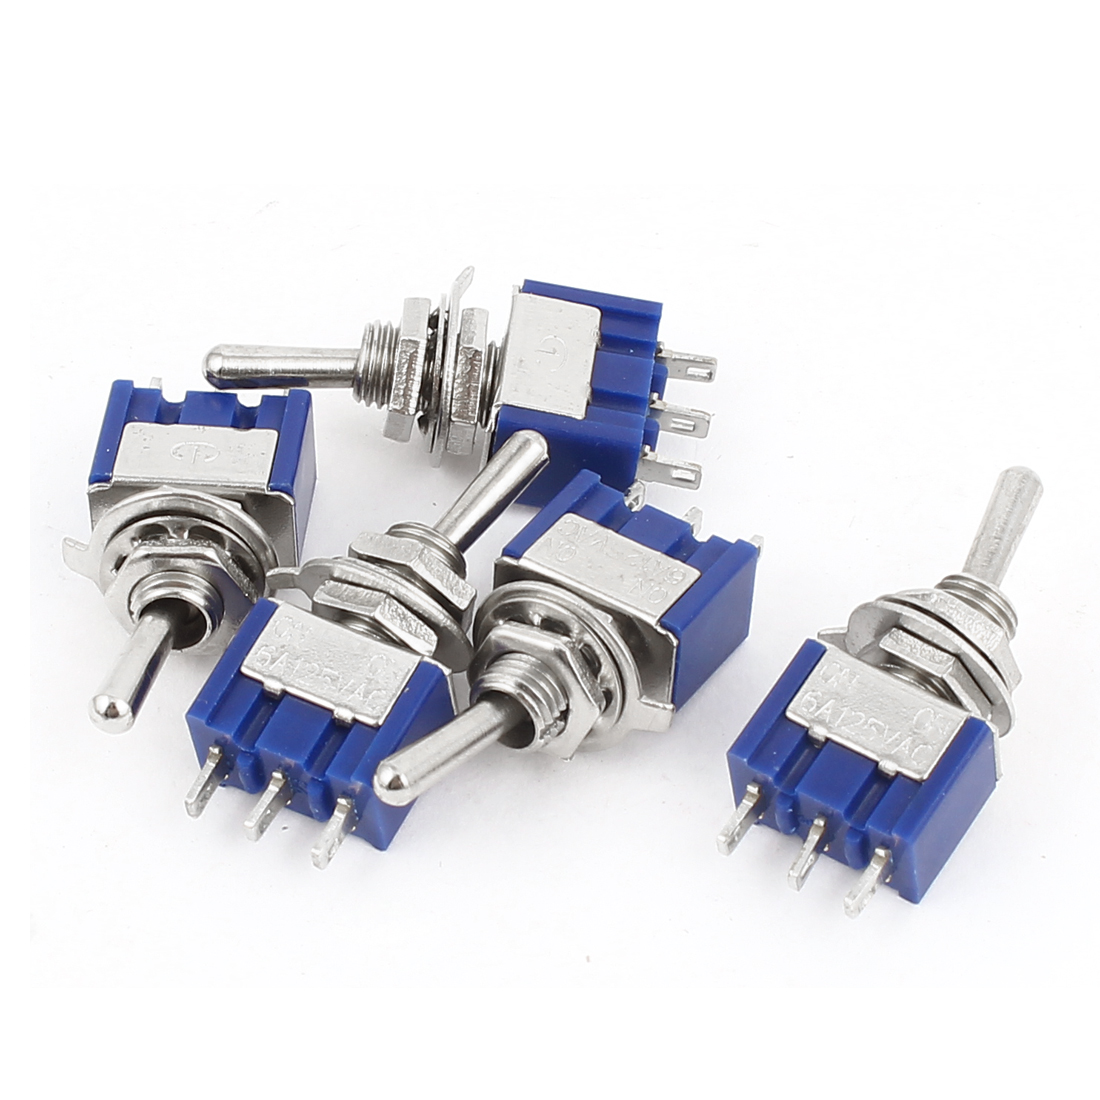 AC 125V 6A SPDT ON-ON 2 Positions 3 Terminals Latching Mini Toggle Switches 5pcs